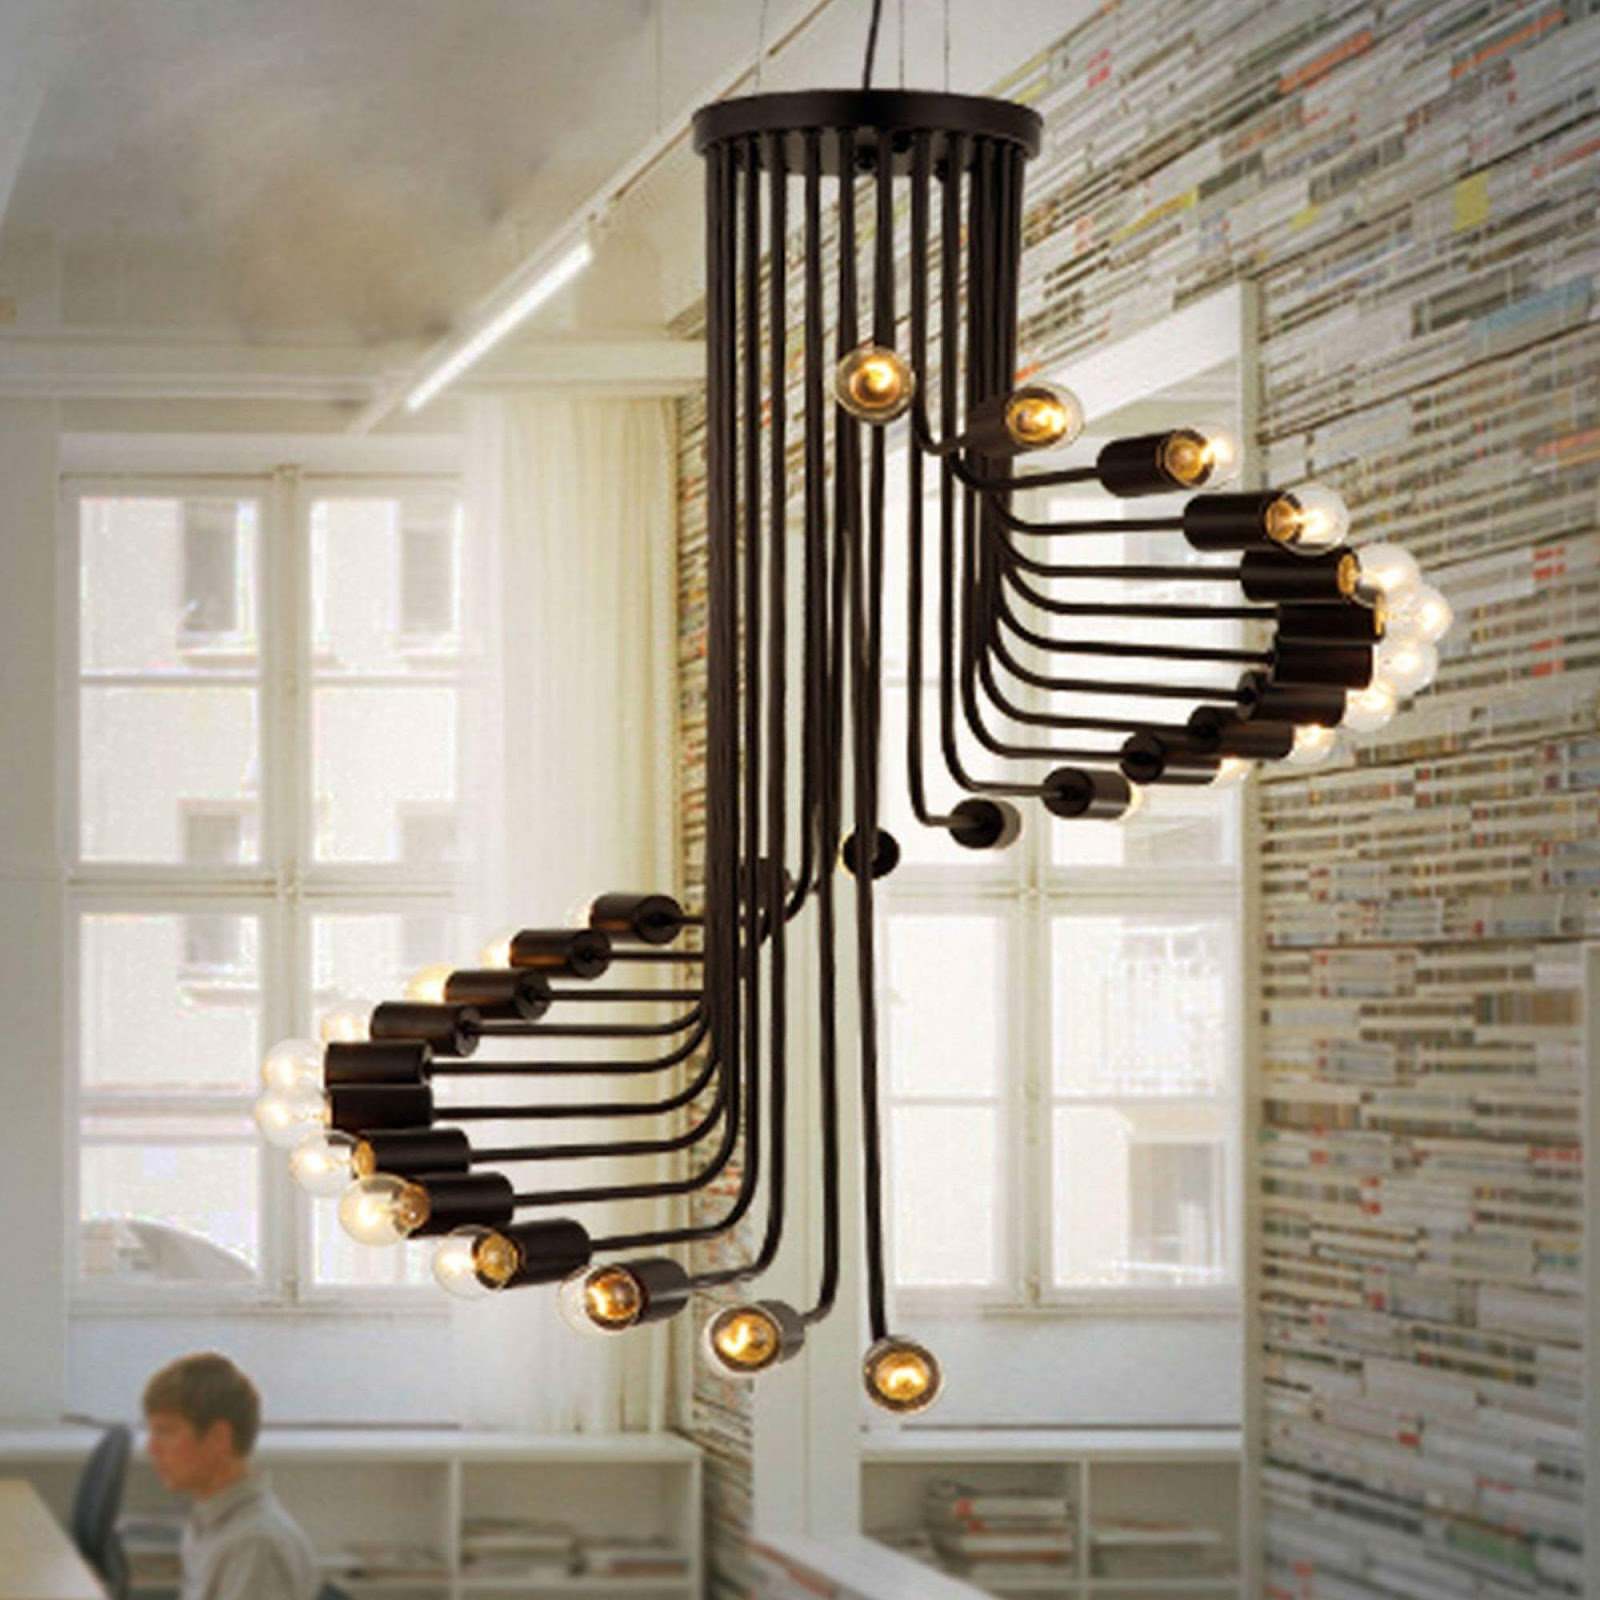 A creative artwork of used material gives a unique source of lights and adding interest to any area of your home. Explore more 50 images of New ways to light up your space to see more design.